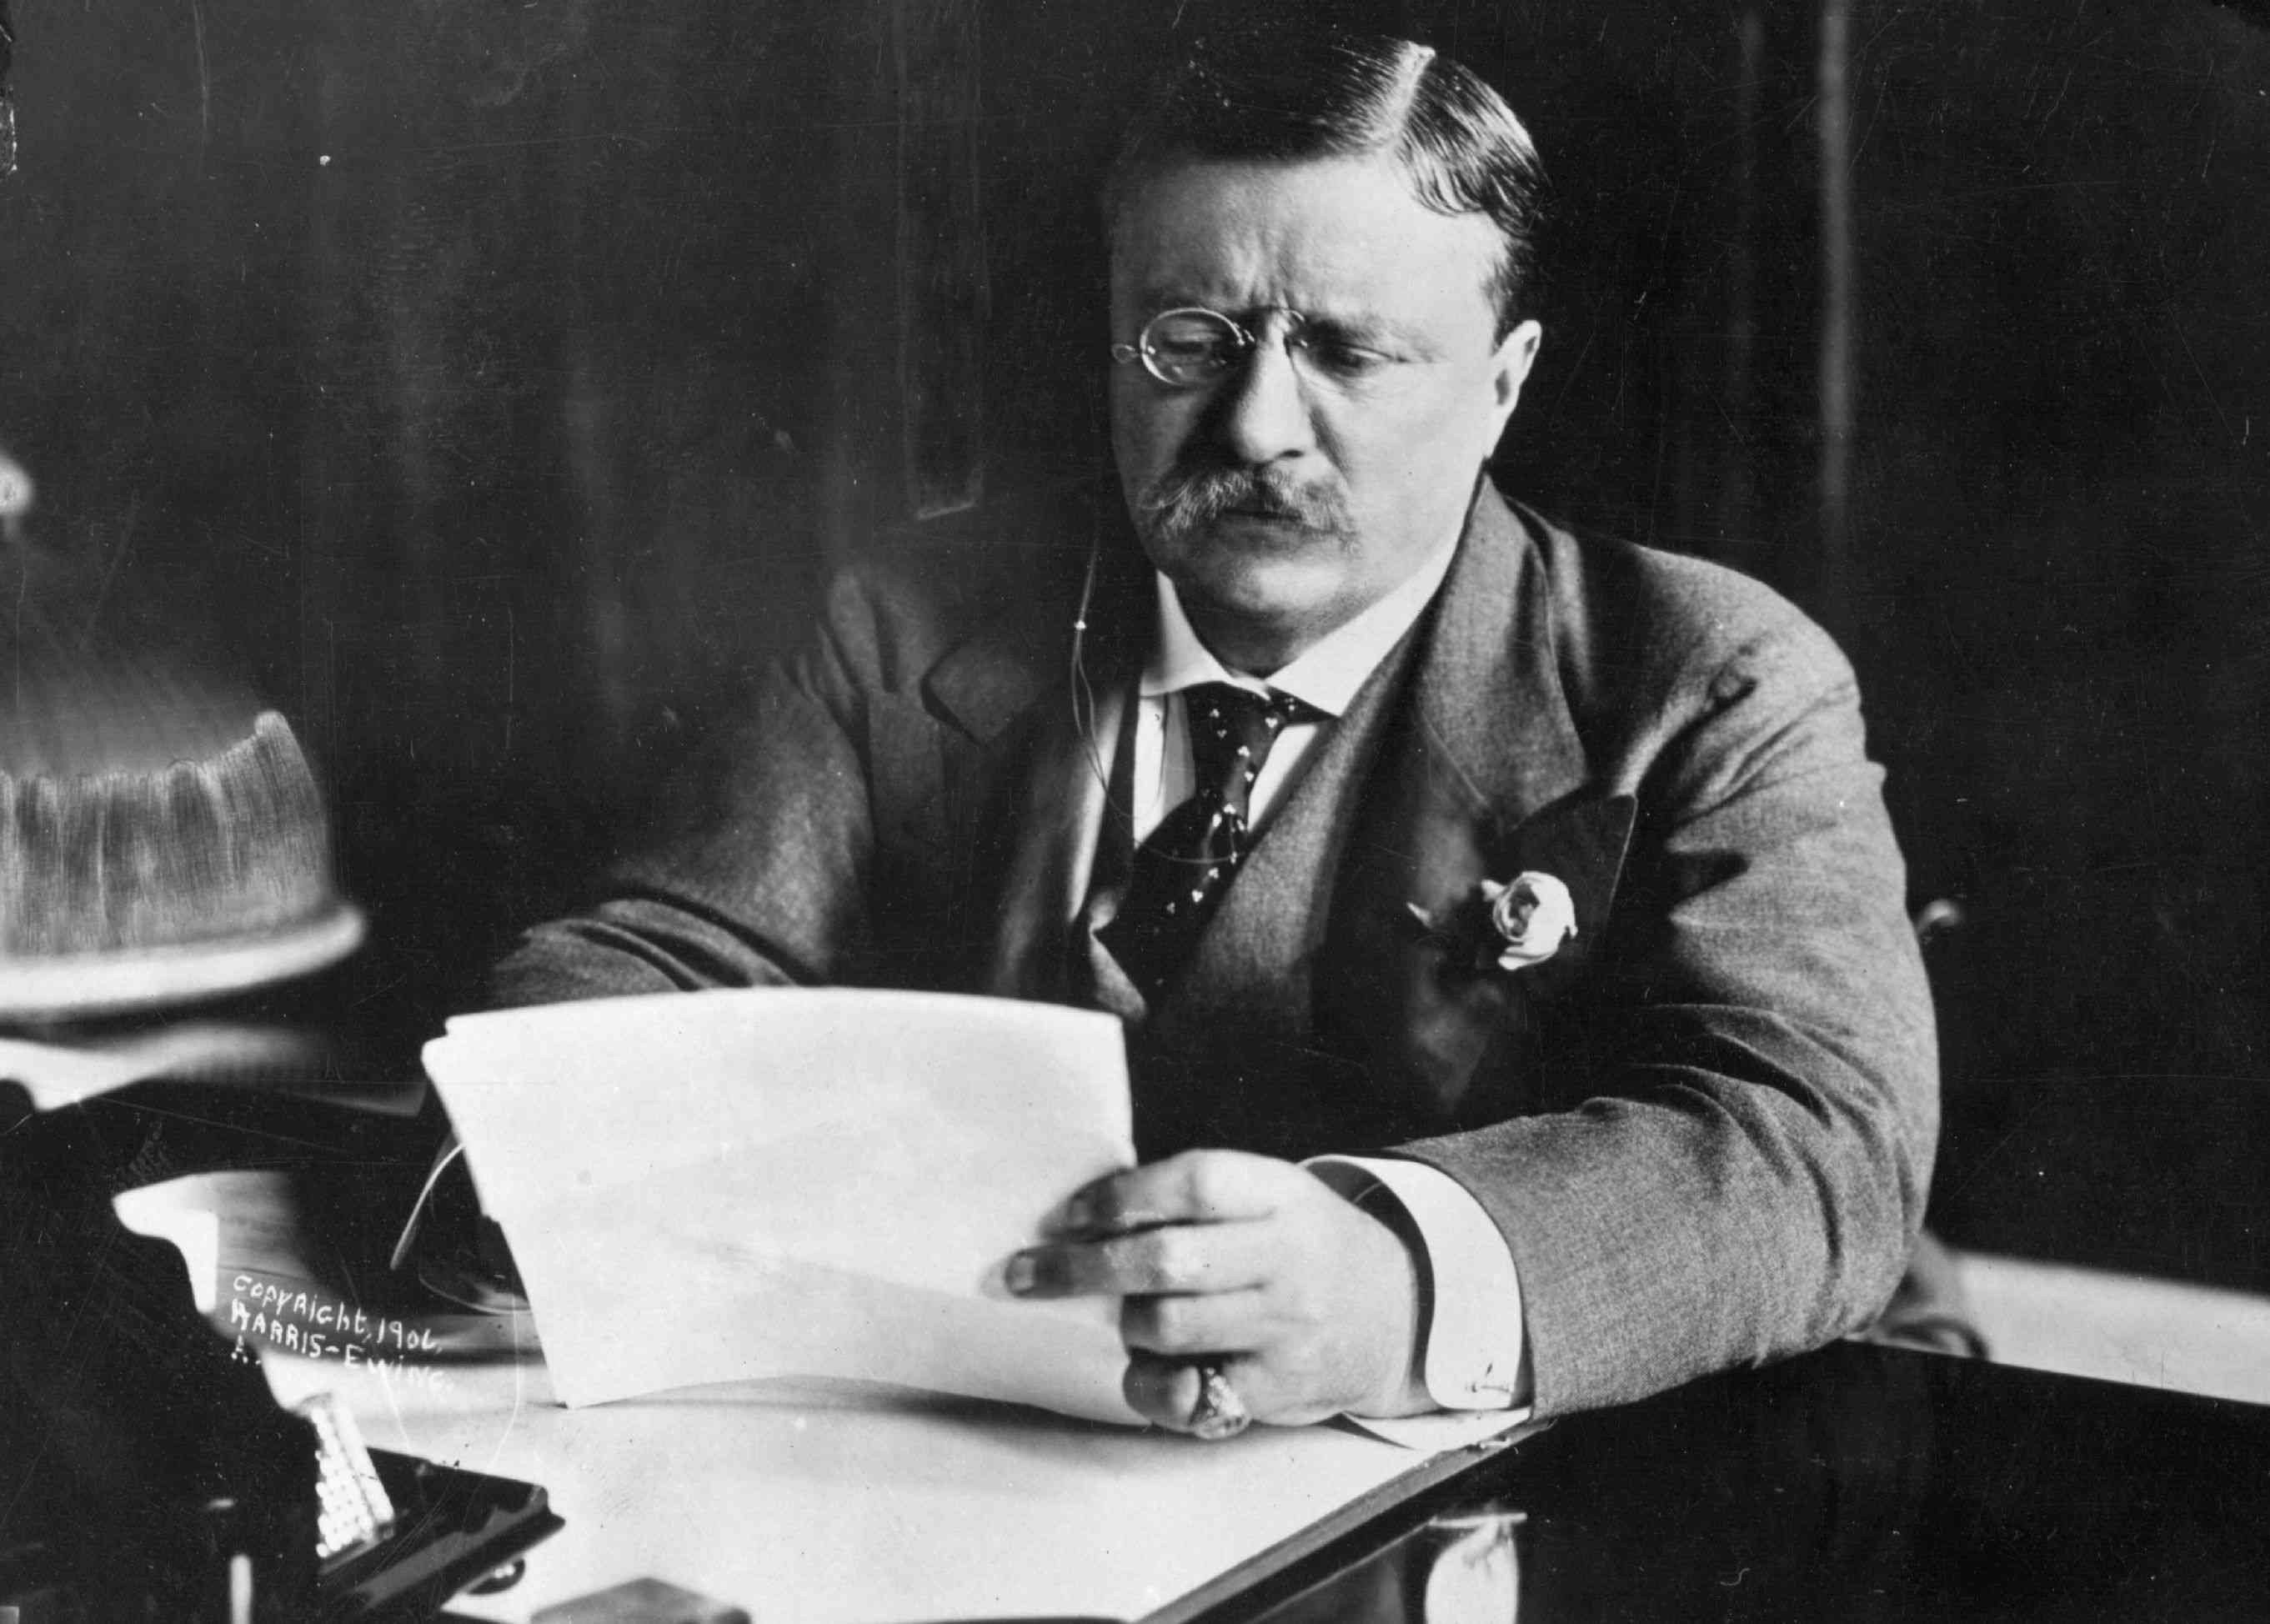 Theodore Roosevelt looking at papers at his desk